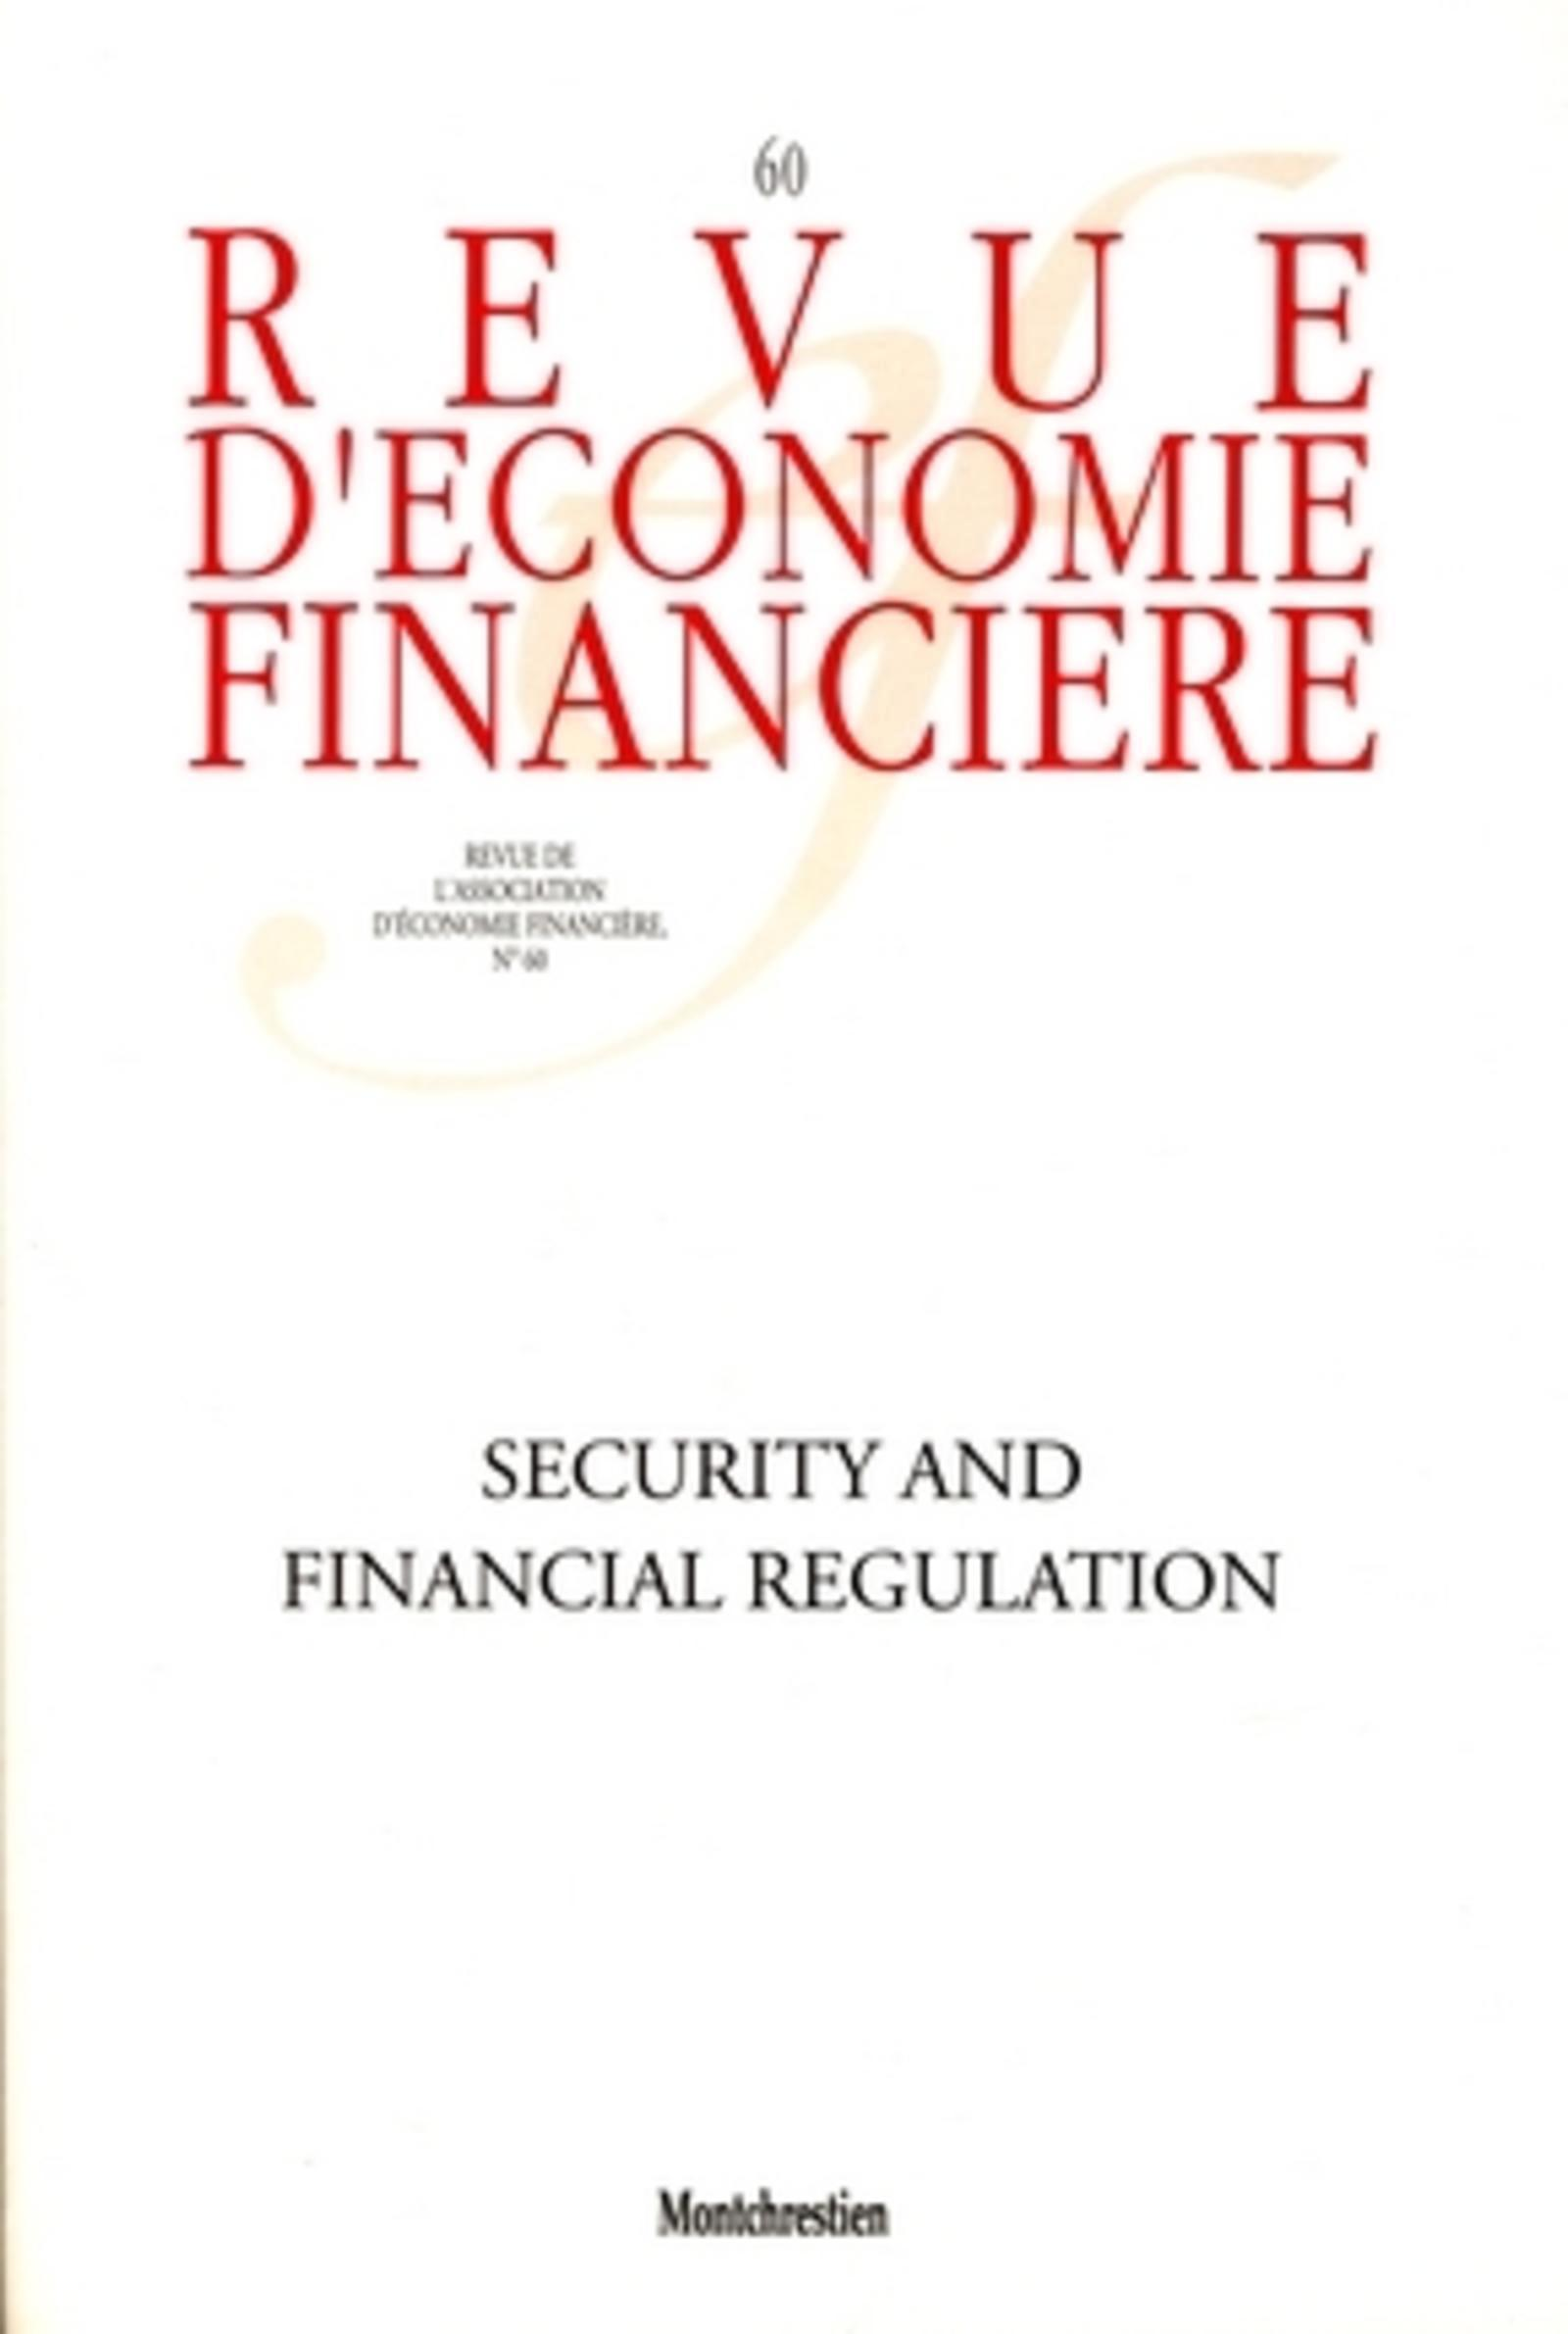 SECURITY AND FINANCIAL REGULATION - N  60